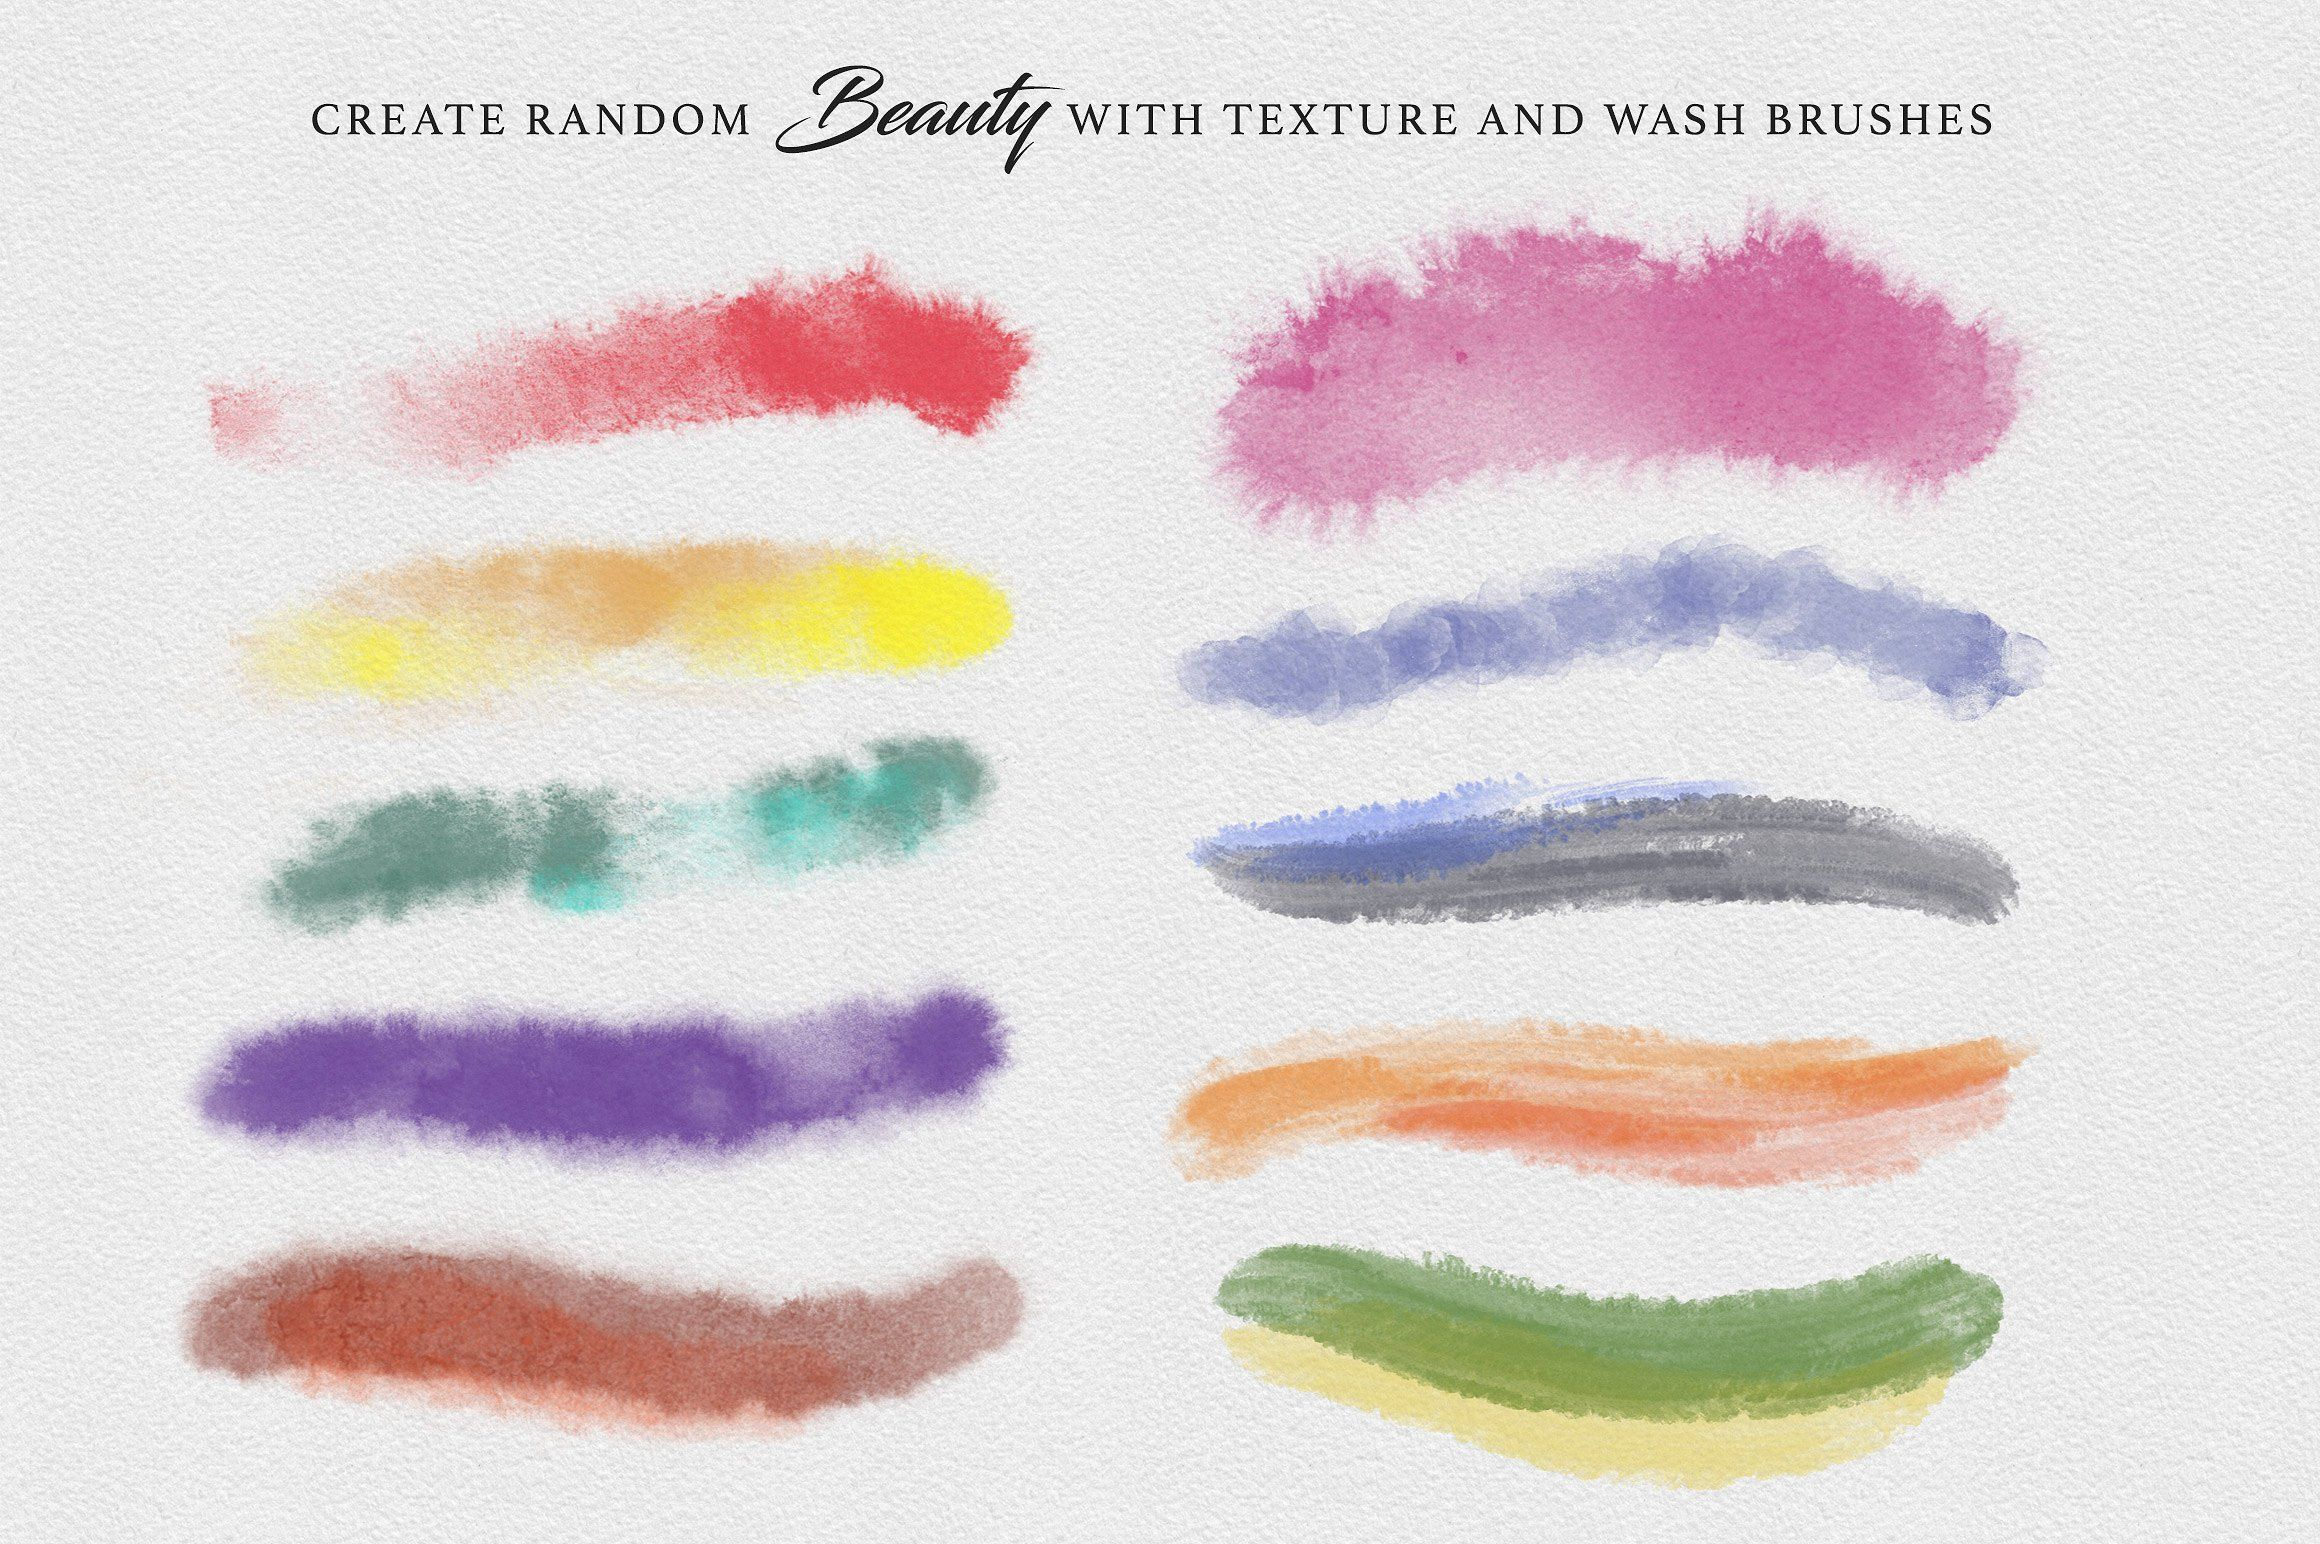 Master Watercolor Procreate Brushes Wanted Decided Custom Create